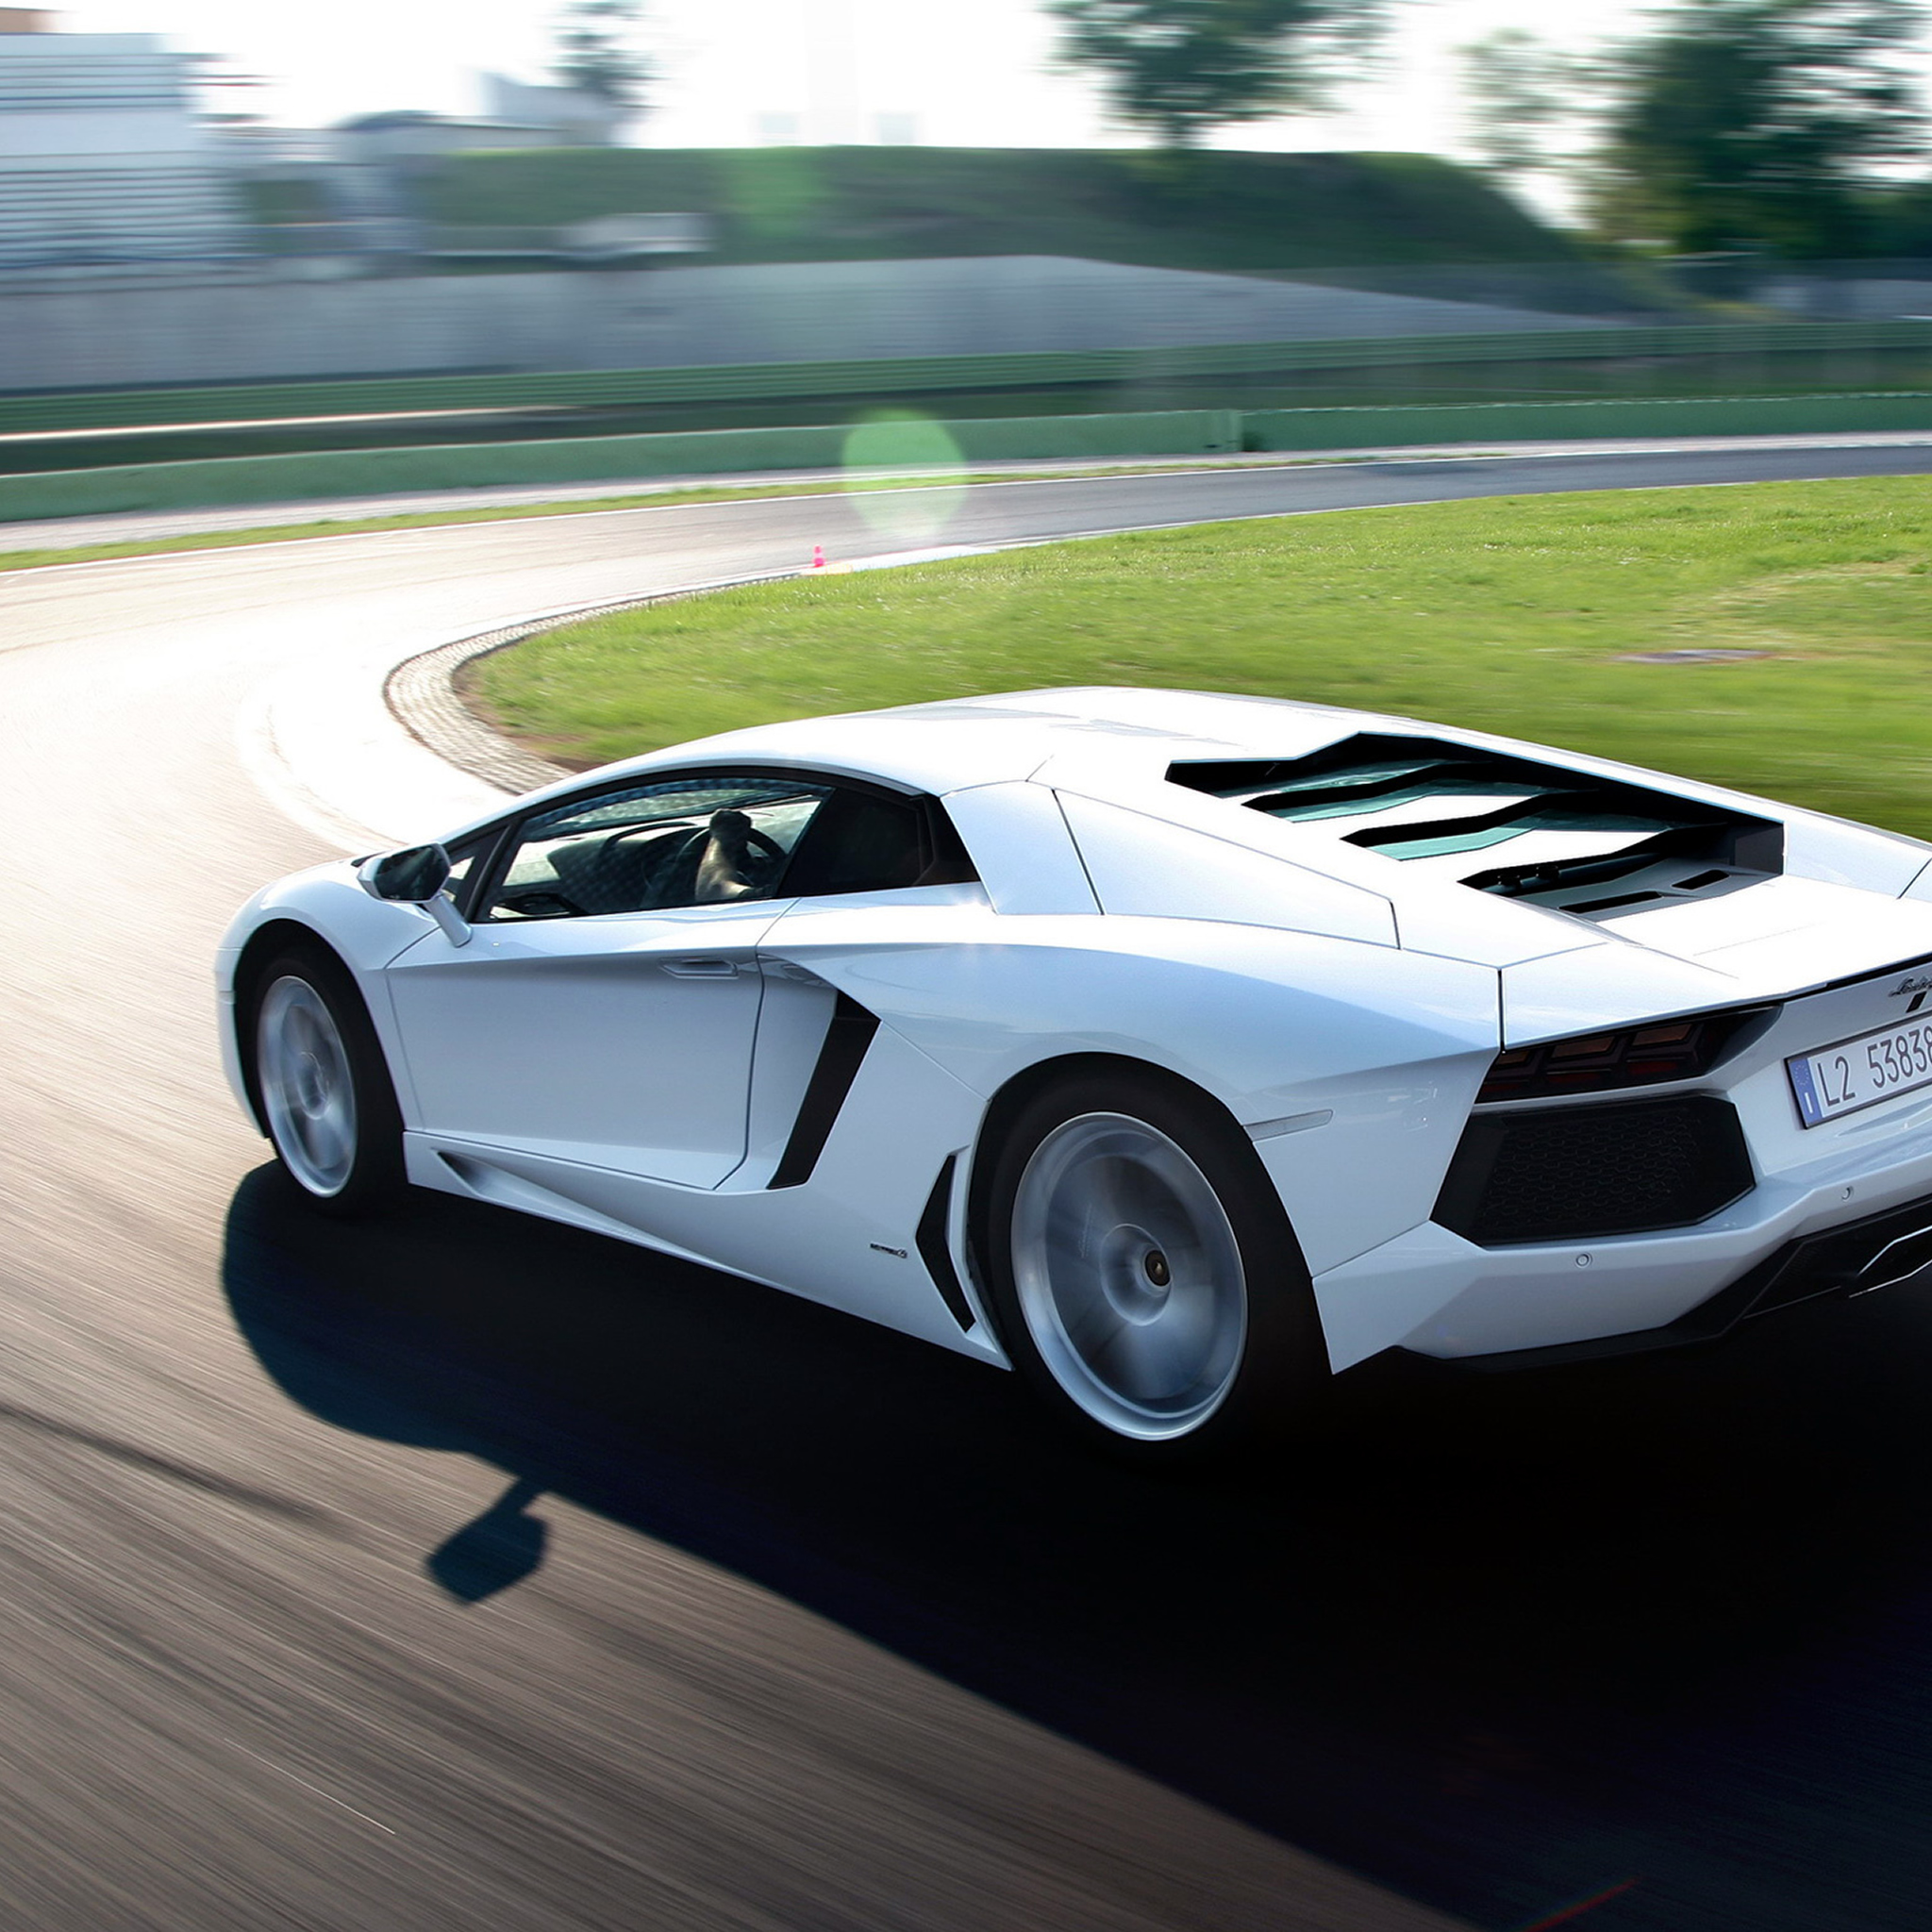 Lamborghini Aventador The new iPad wallpaper ilikewallpaper com Lamborghini Aventador   iPad